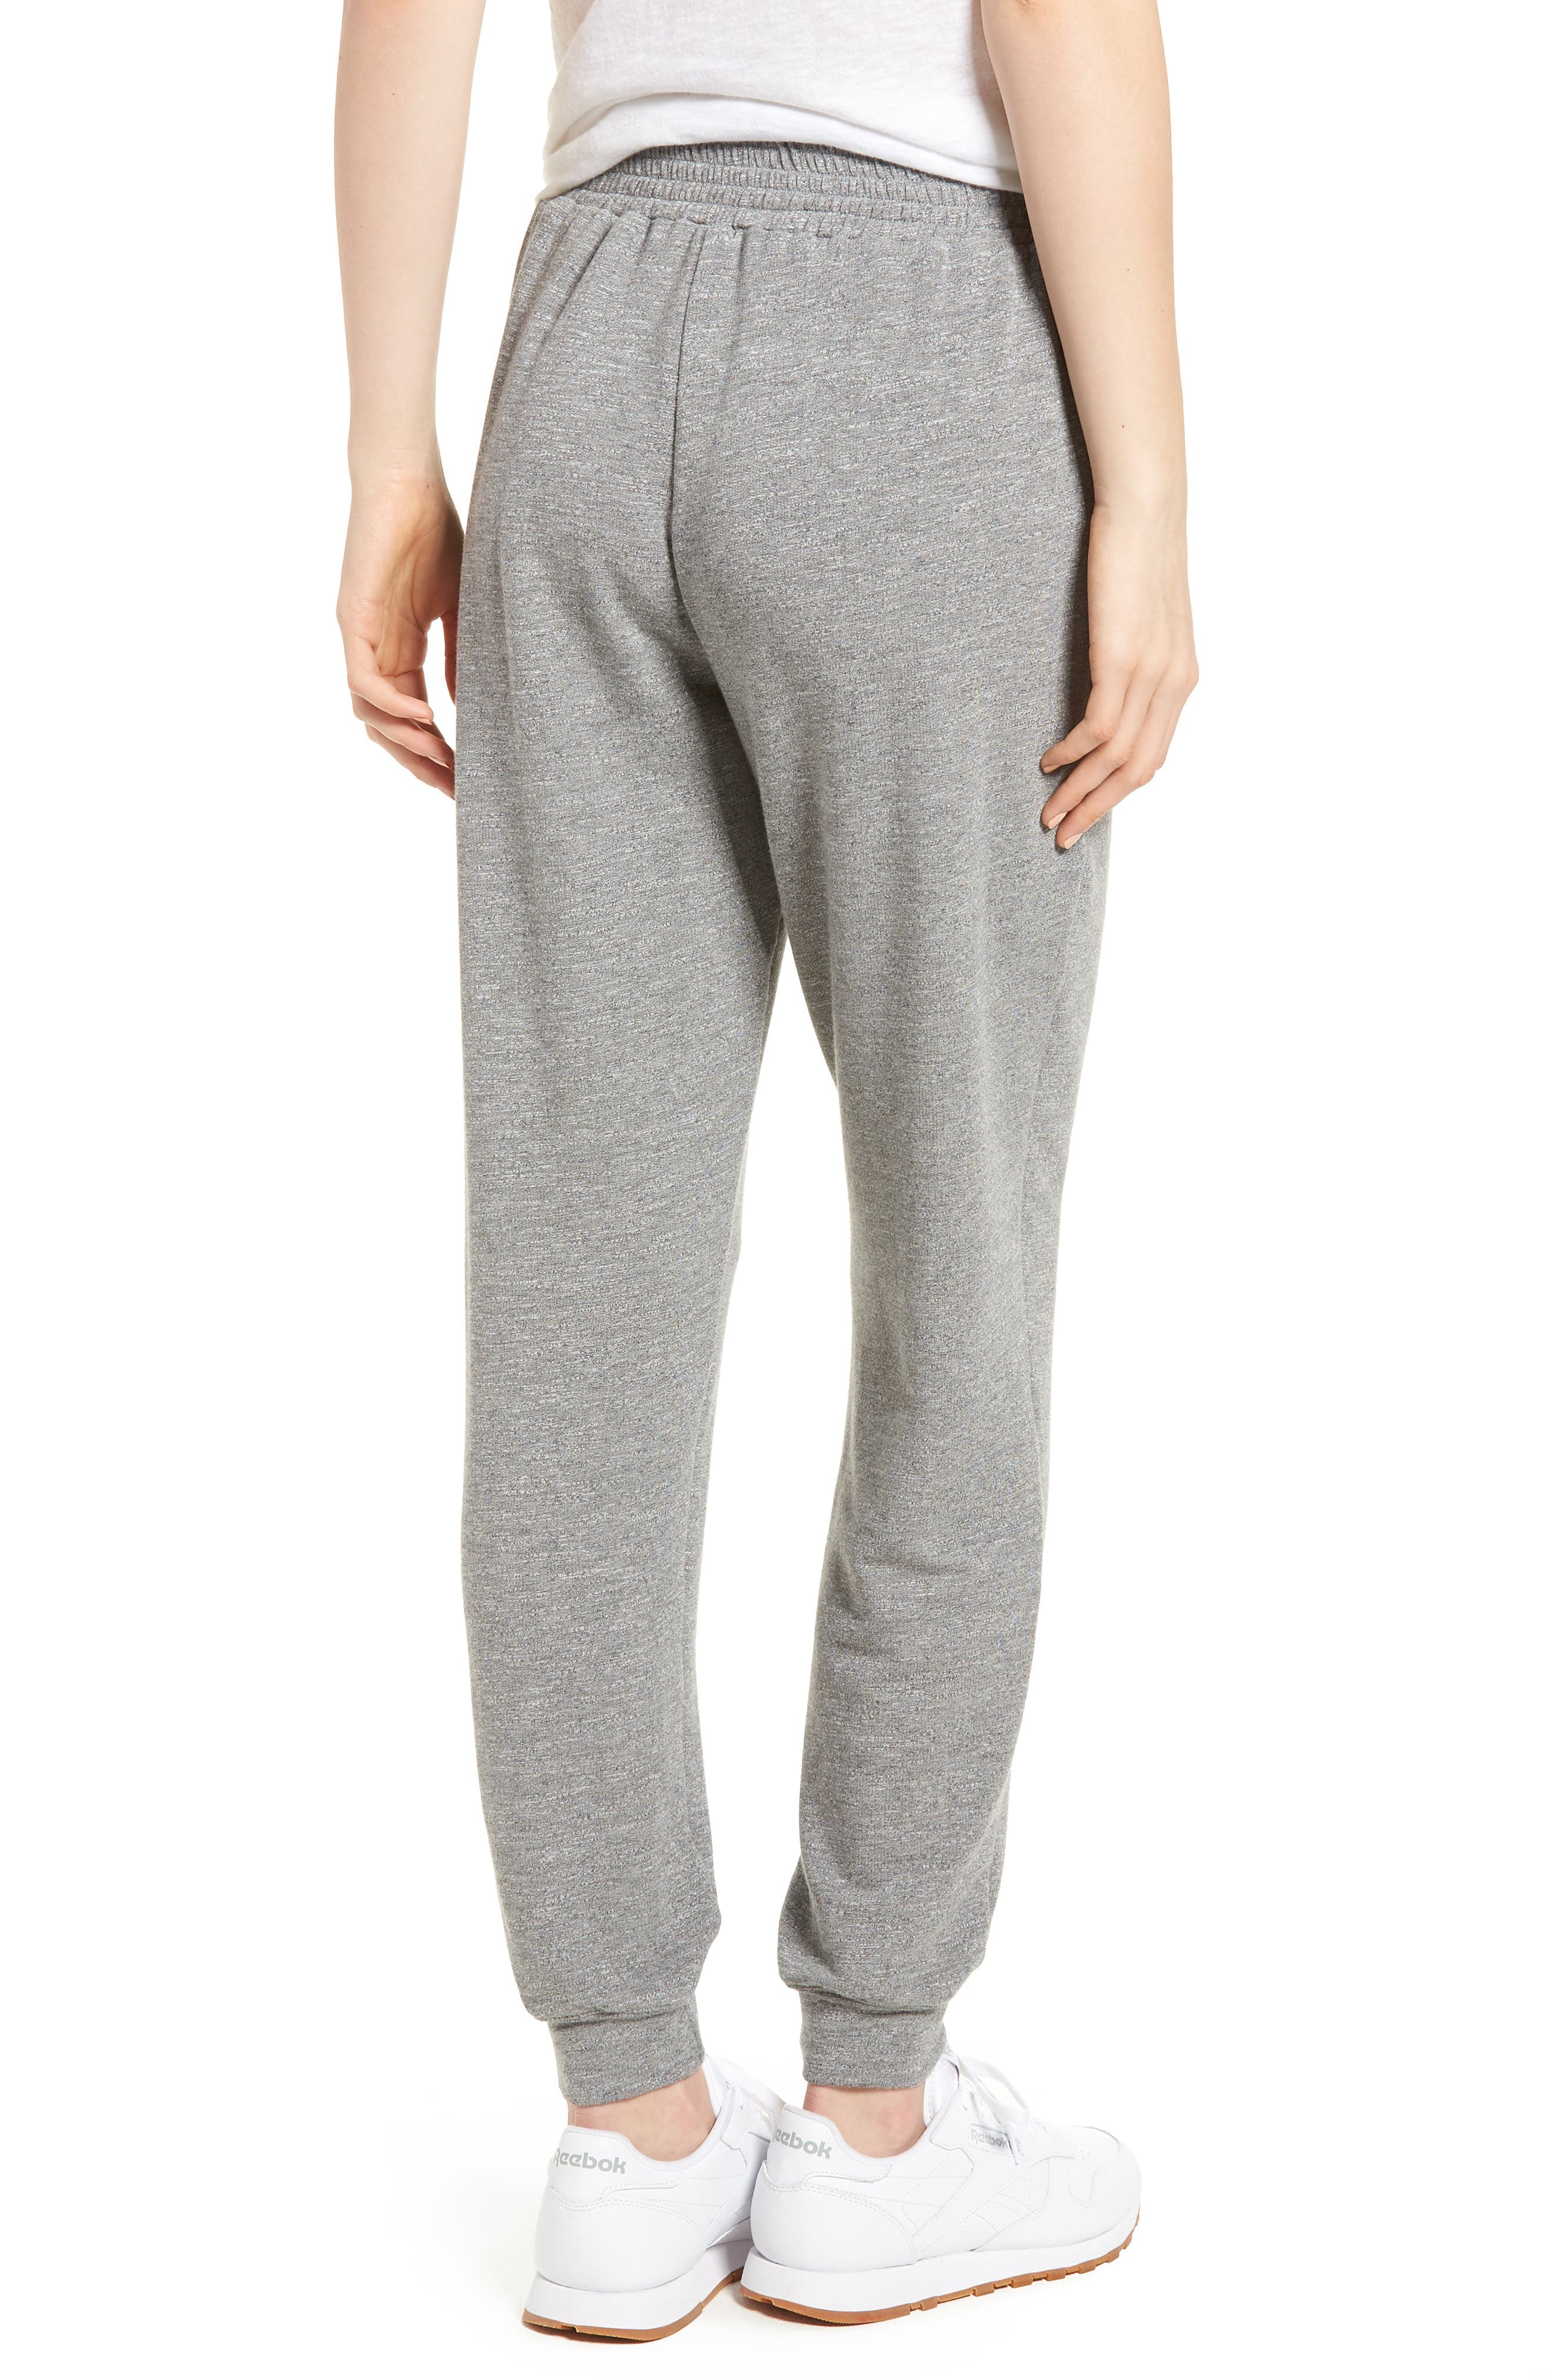 Dream Active Jogger Pants,                             Alternate thumbnail 2, color,                             Heather Grey